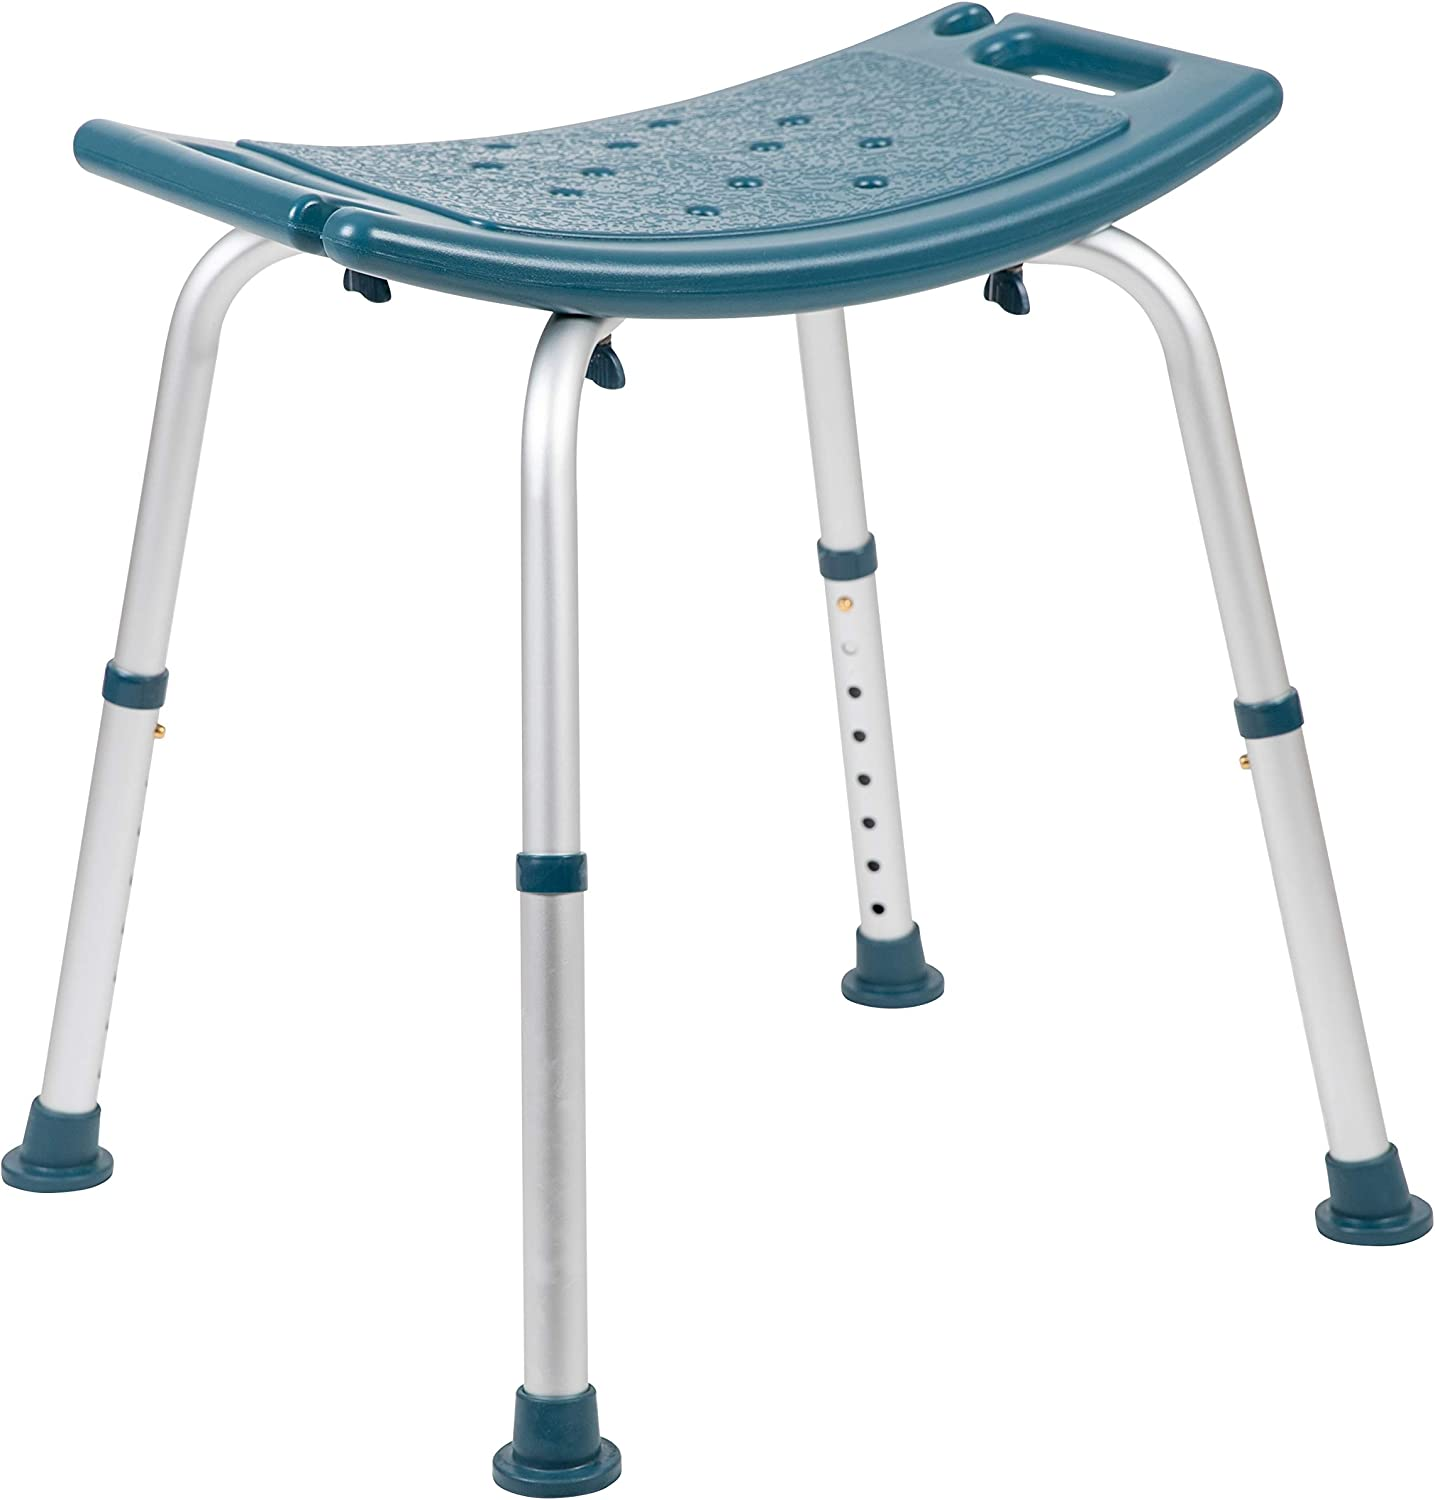 Capacity Adjustable White Bath /& Shower Chair with Quick Release Back /& Arms Flash Furniture HERCULES Series 300 Lb